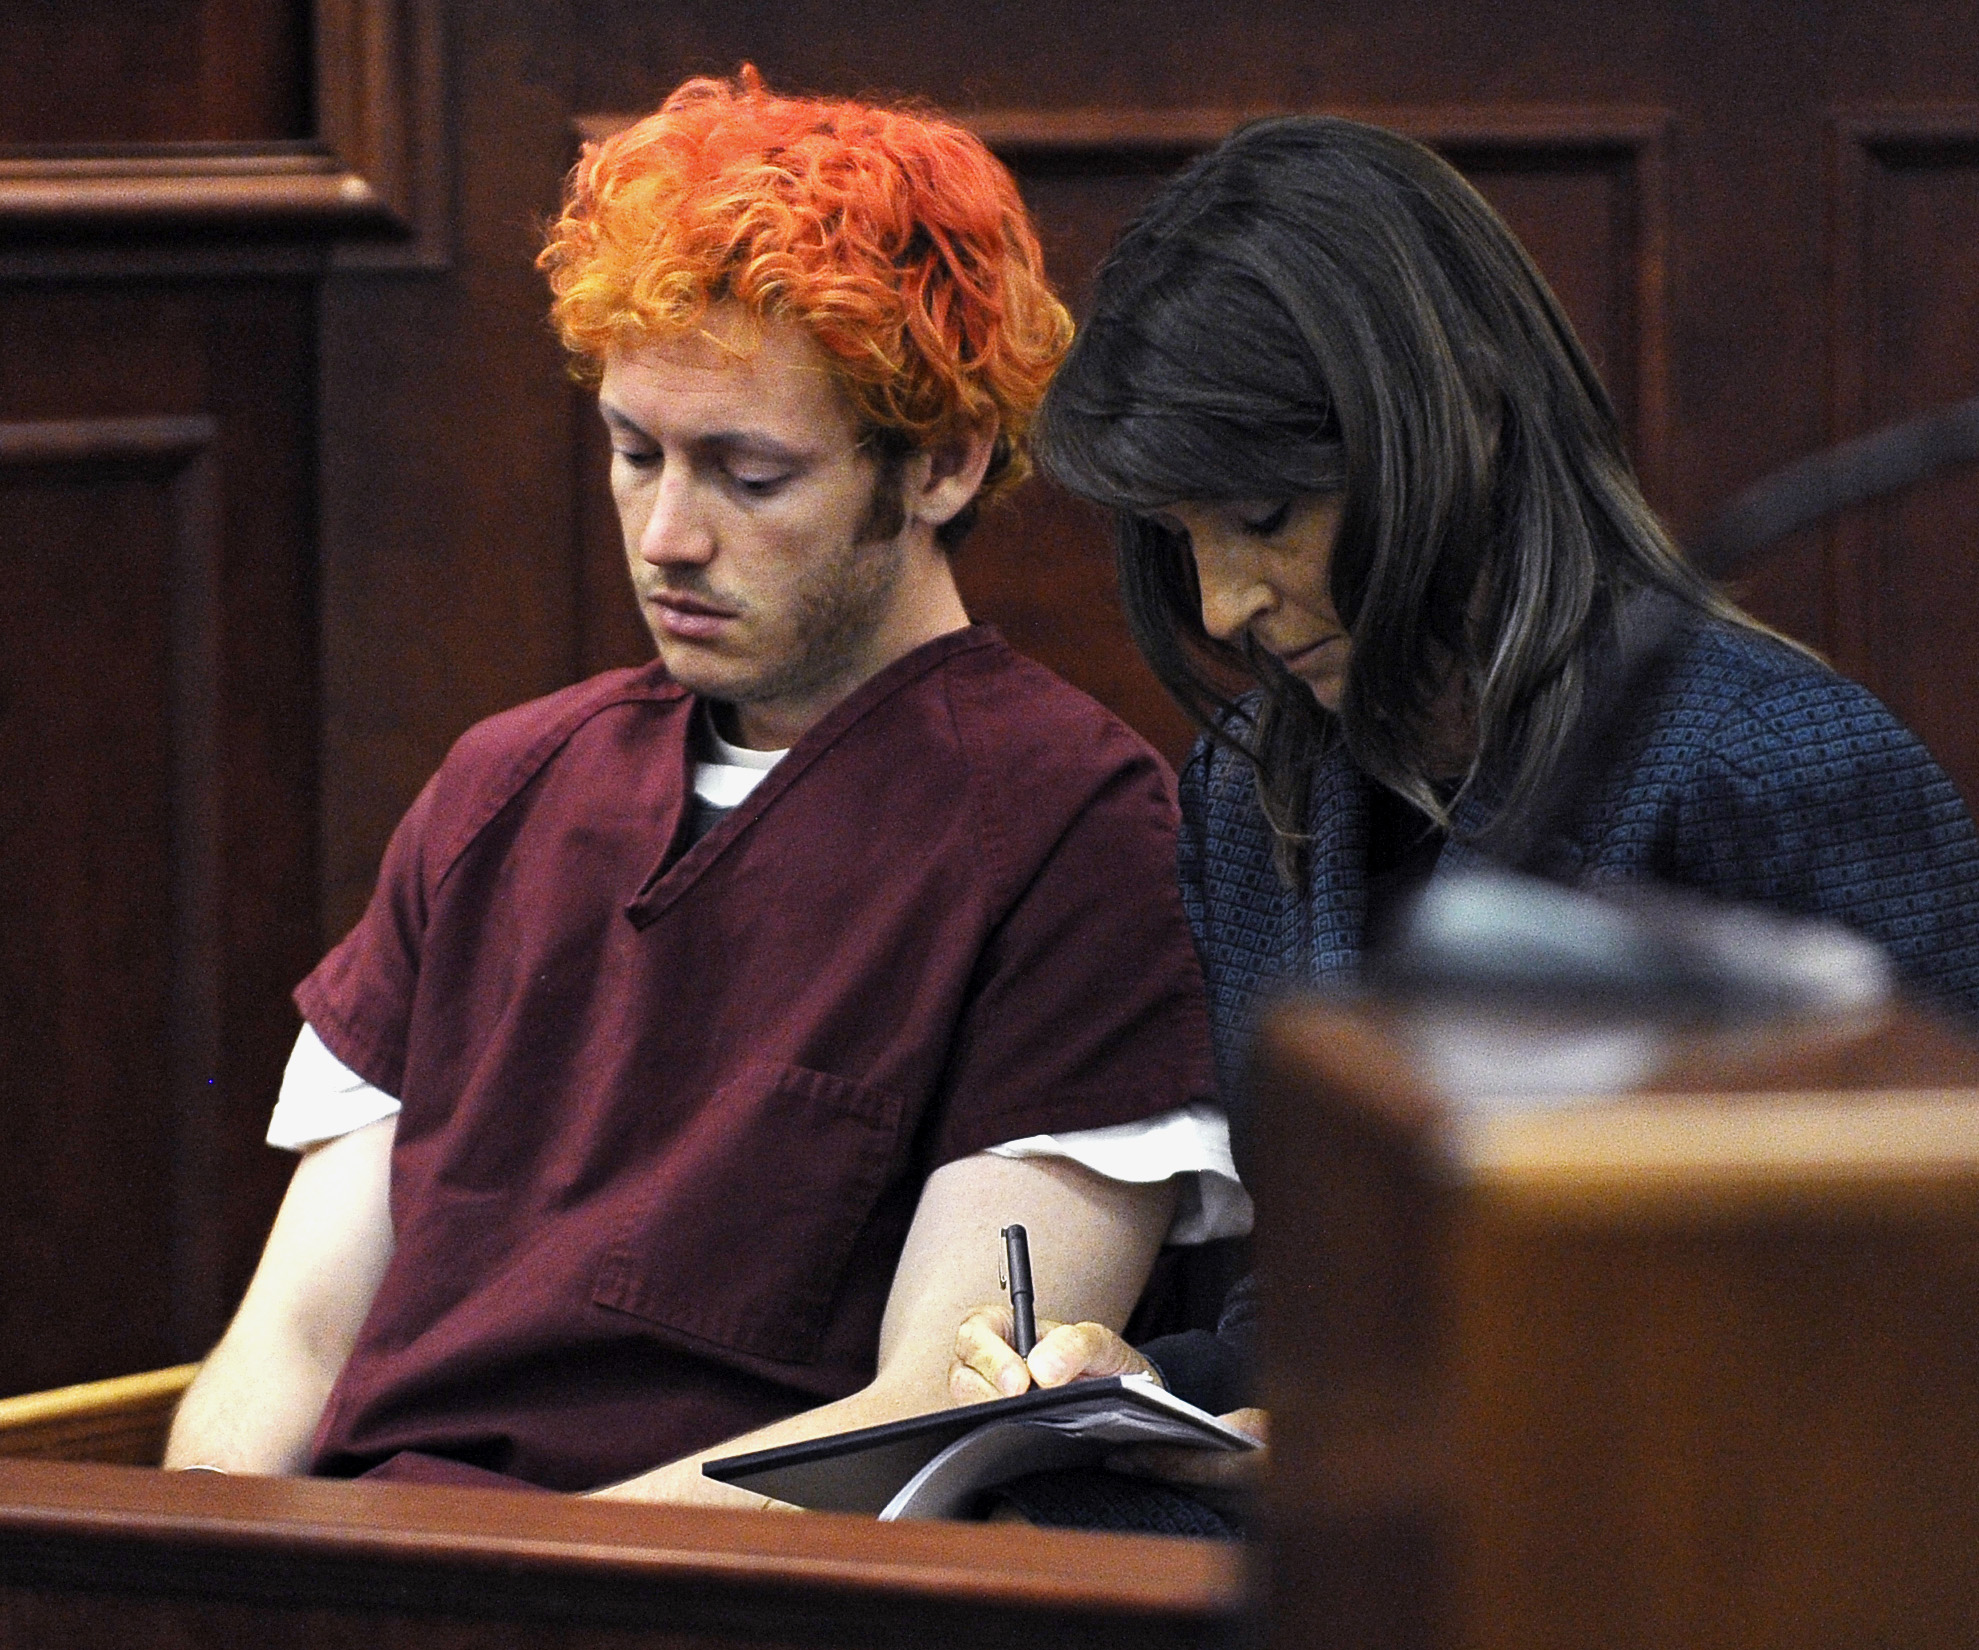 Colorado Shooting Suspect Charged With 142 Criminal Counts